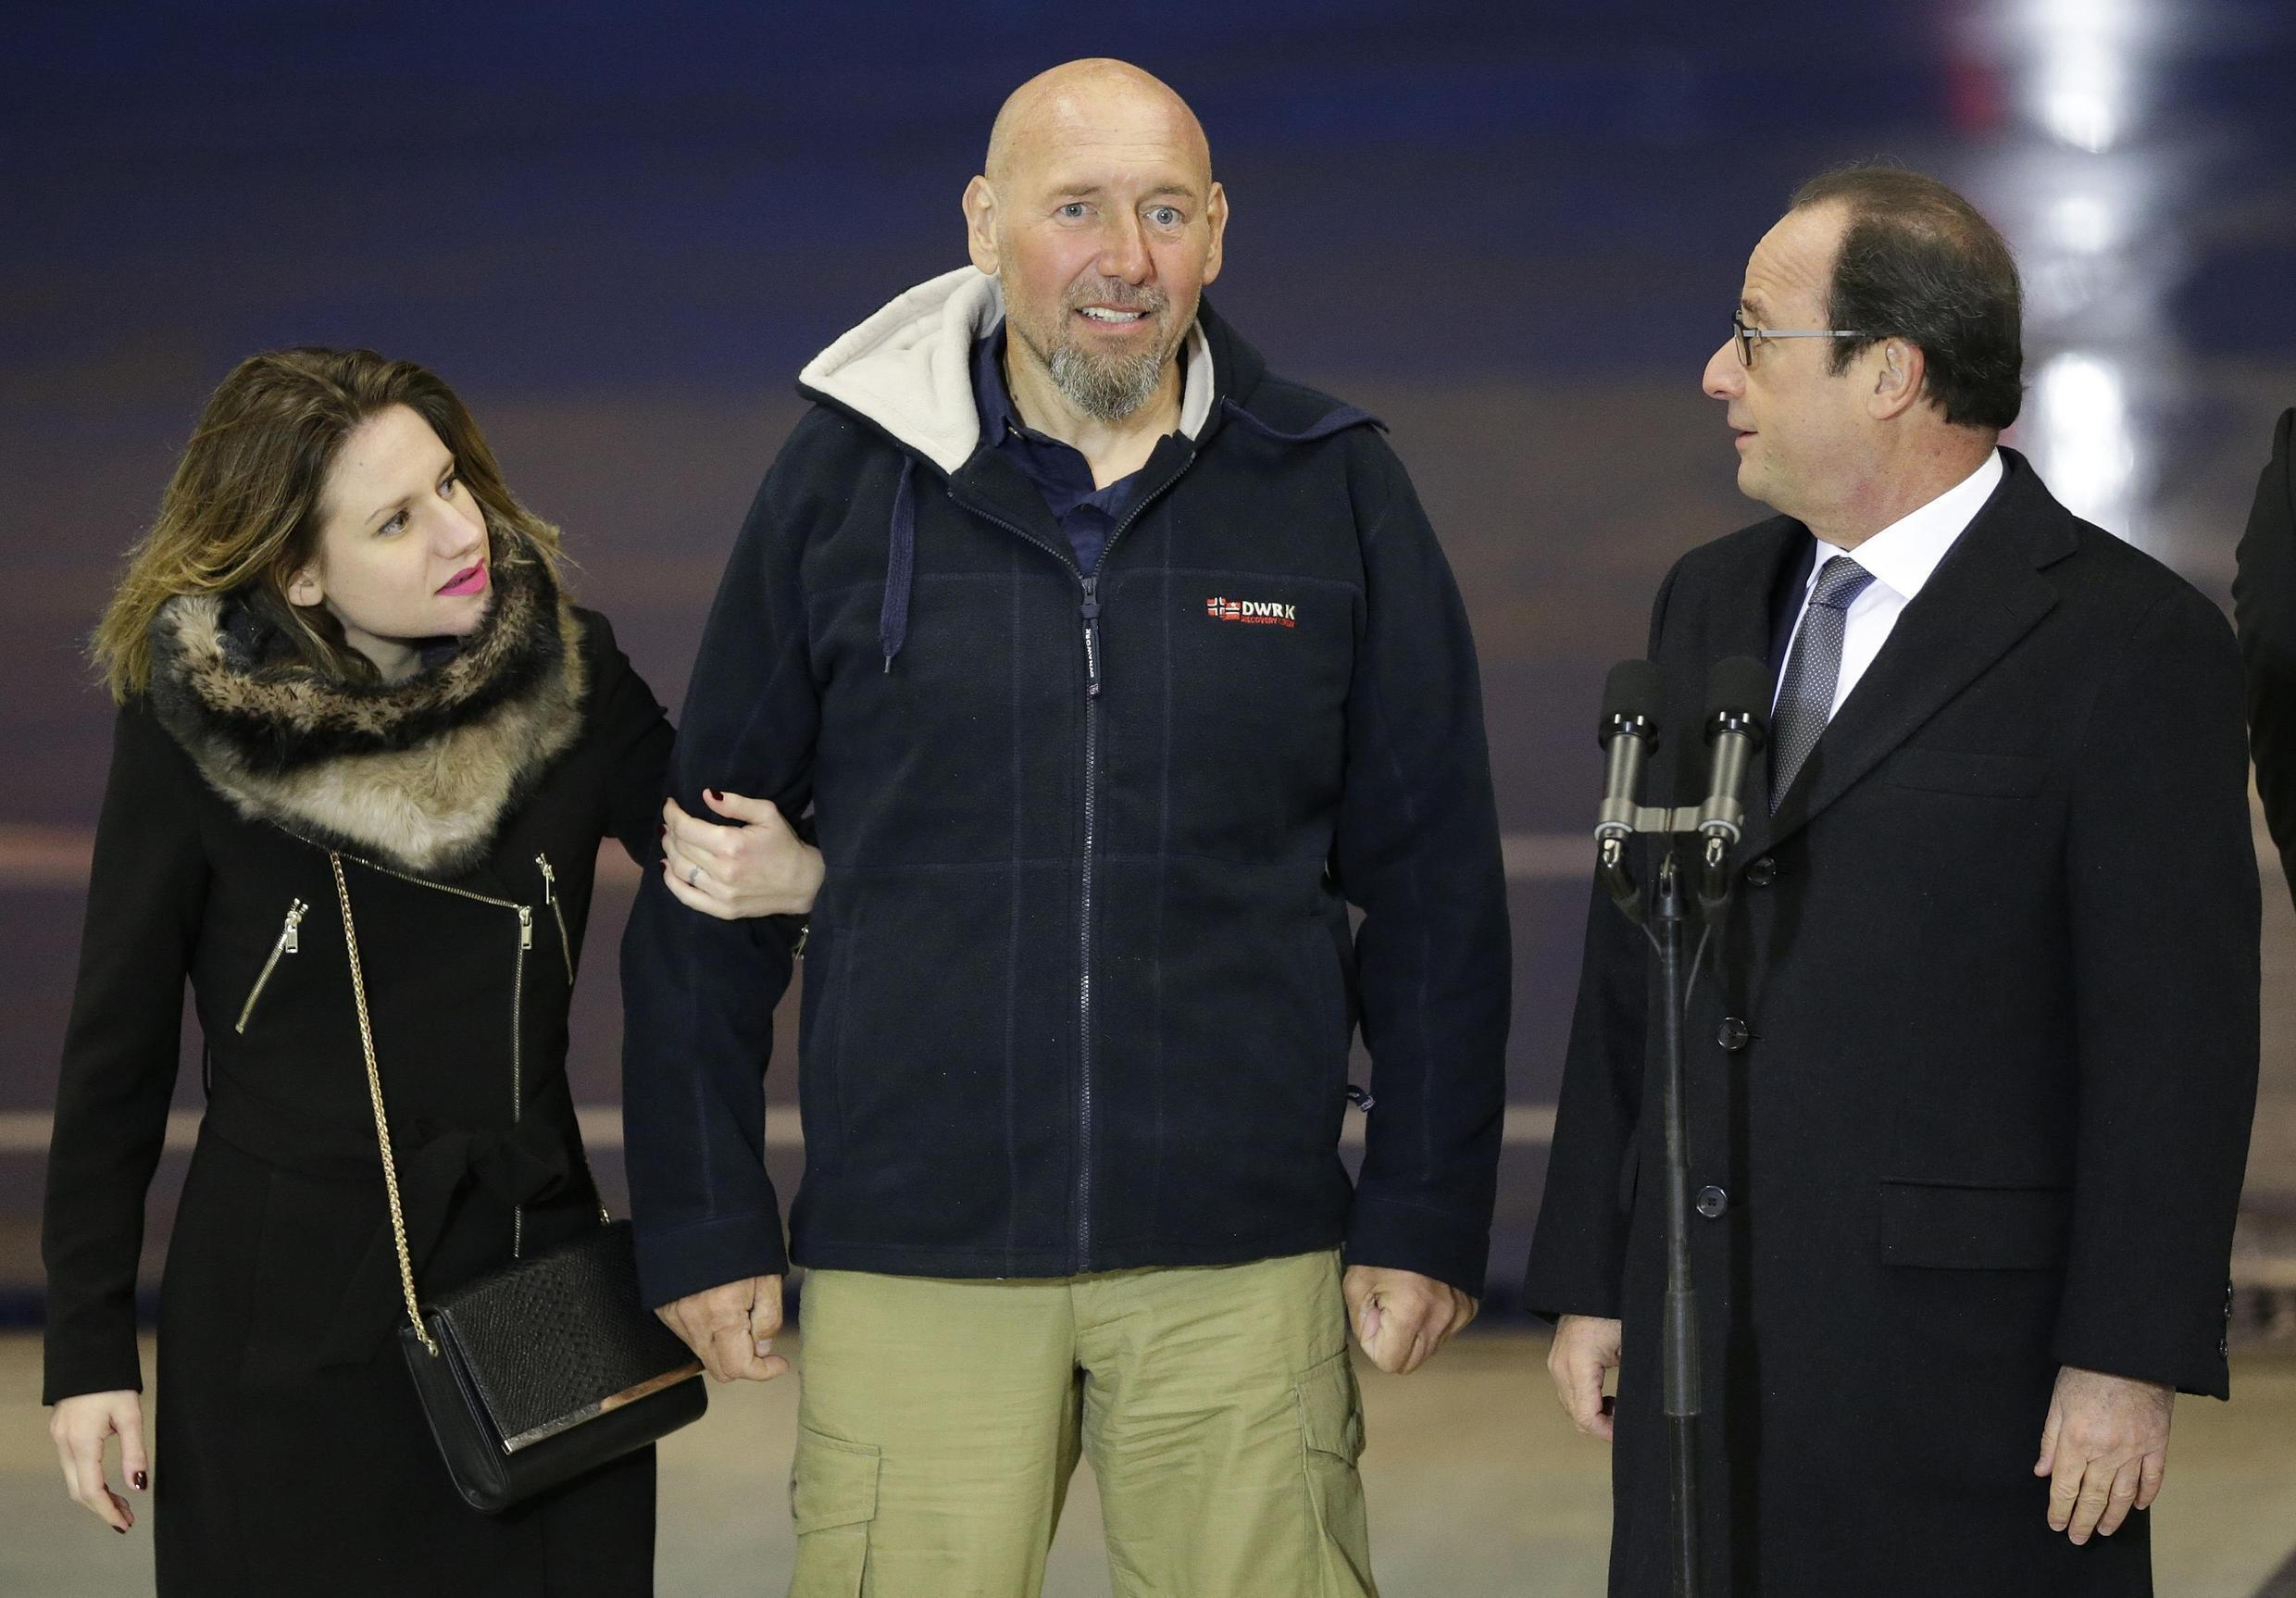 Serge Lazarevic (L) with French Defence Minister Jean-Yves Le Drian (C) with his daughter Diane (L) and French President François Hollande at Villacoublay airport